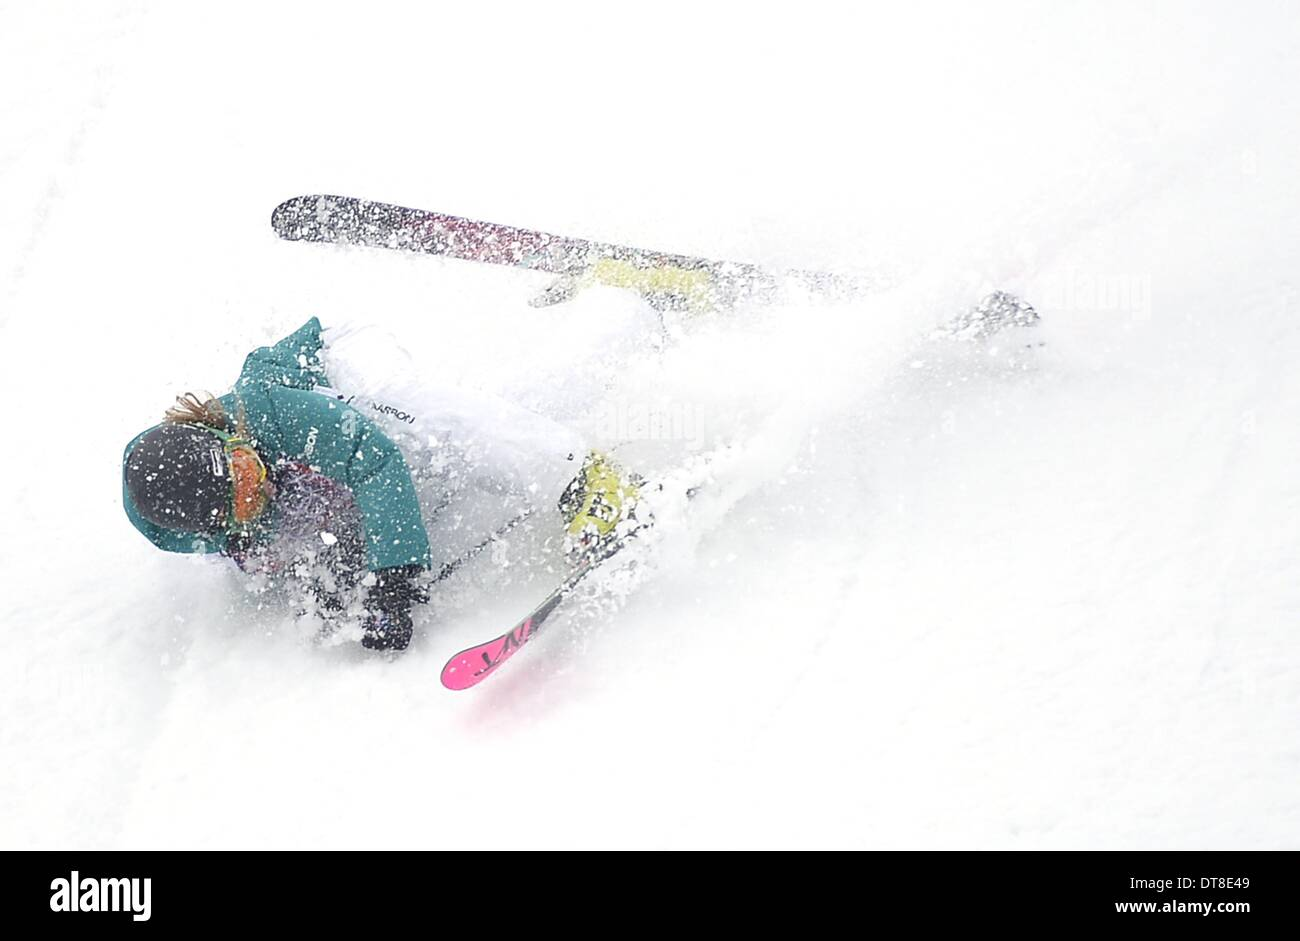 Sochi, Russia. 11th February 2014. Anna Segal (AUS) crashes in the final. Womens Ski Slopestyle - Rosa Khuter Extreme Park - Sochi2014 winter Olympics - Sochi - Russia - 11/02/2014 Credit:  Sport In Pictures/Alamy Live News - Stock Image